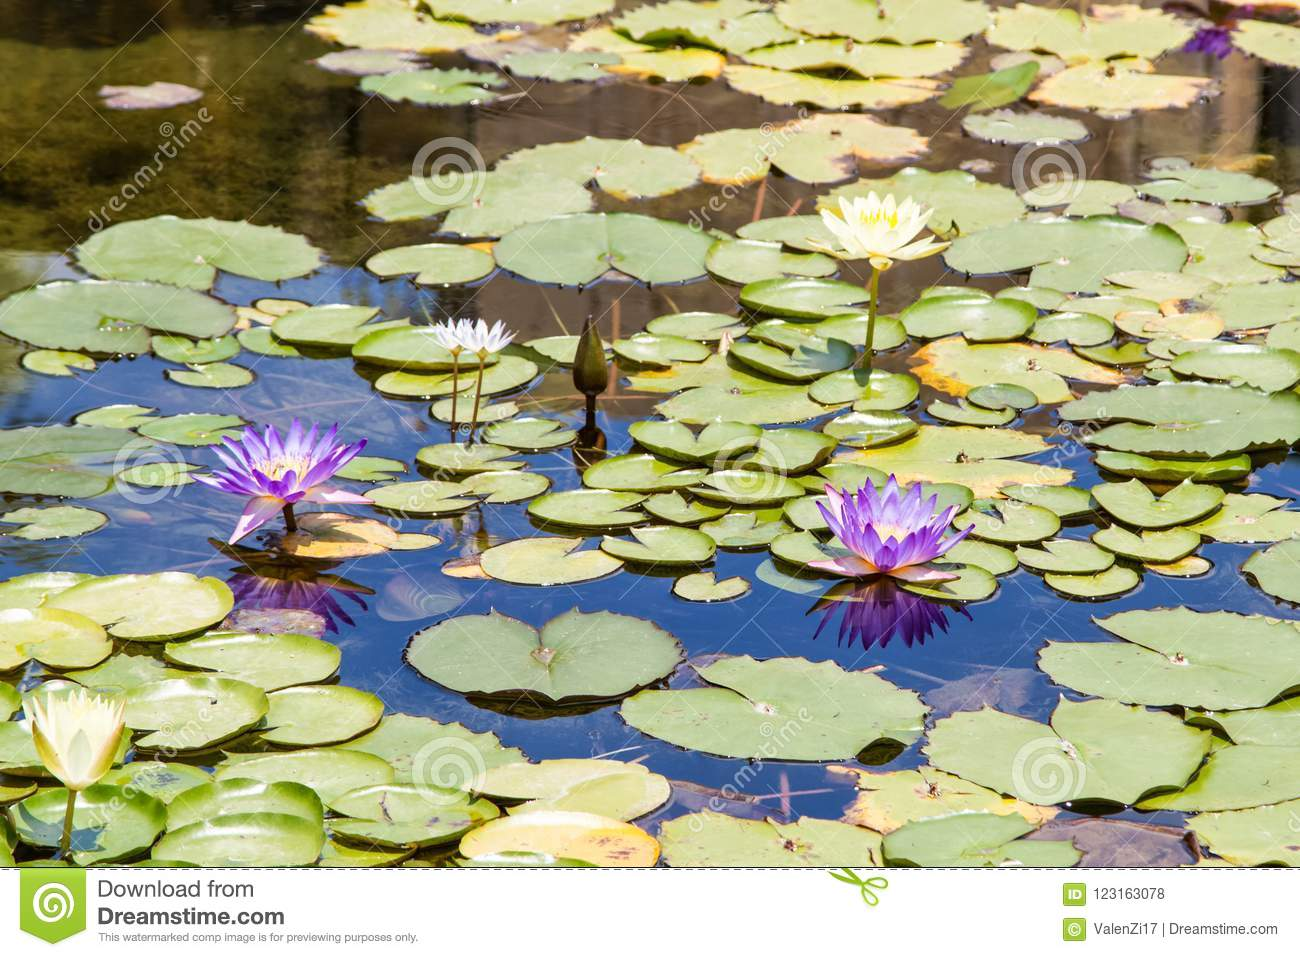 Purple and white water lilies in pond